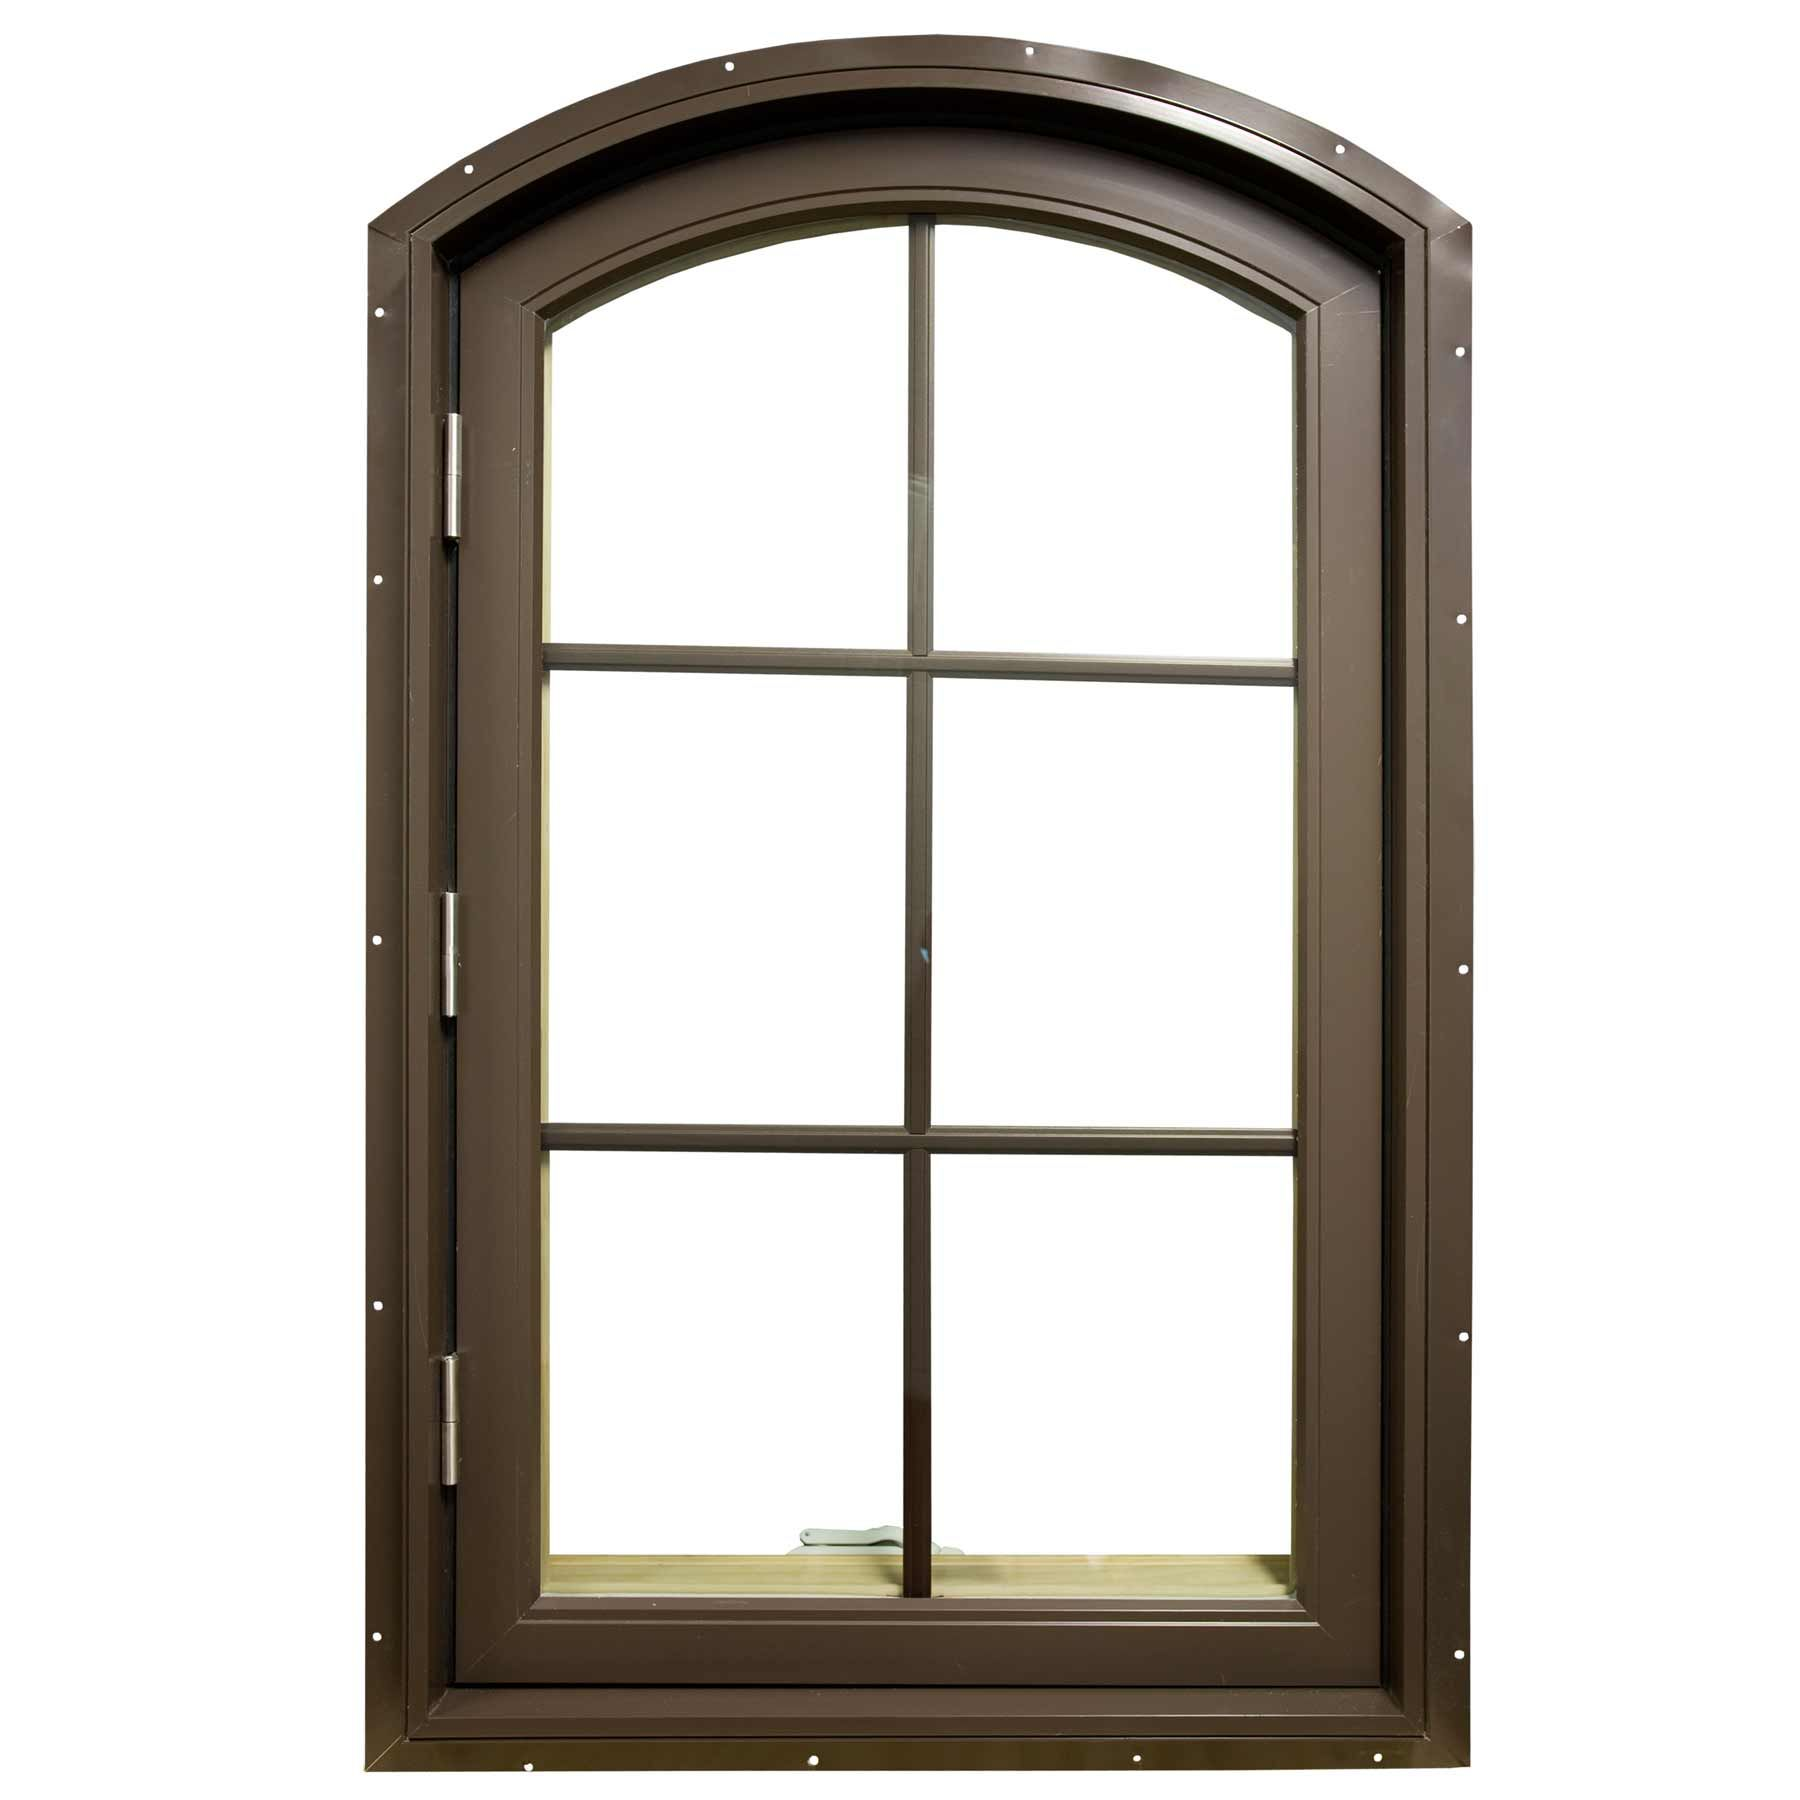 House windows frame design - Aluminum Casement Windows Are A Traditional Style Of Window Commonly Found In Older Houses These Windows Are More Like Small Doors With Glass Windows